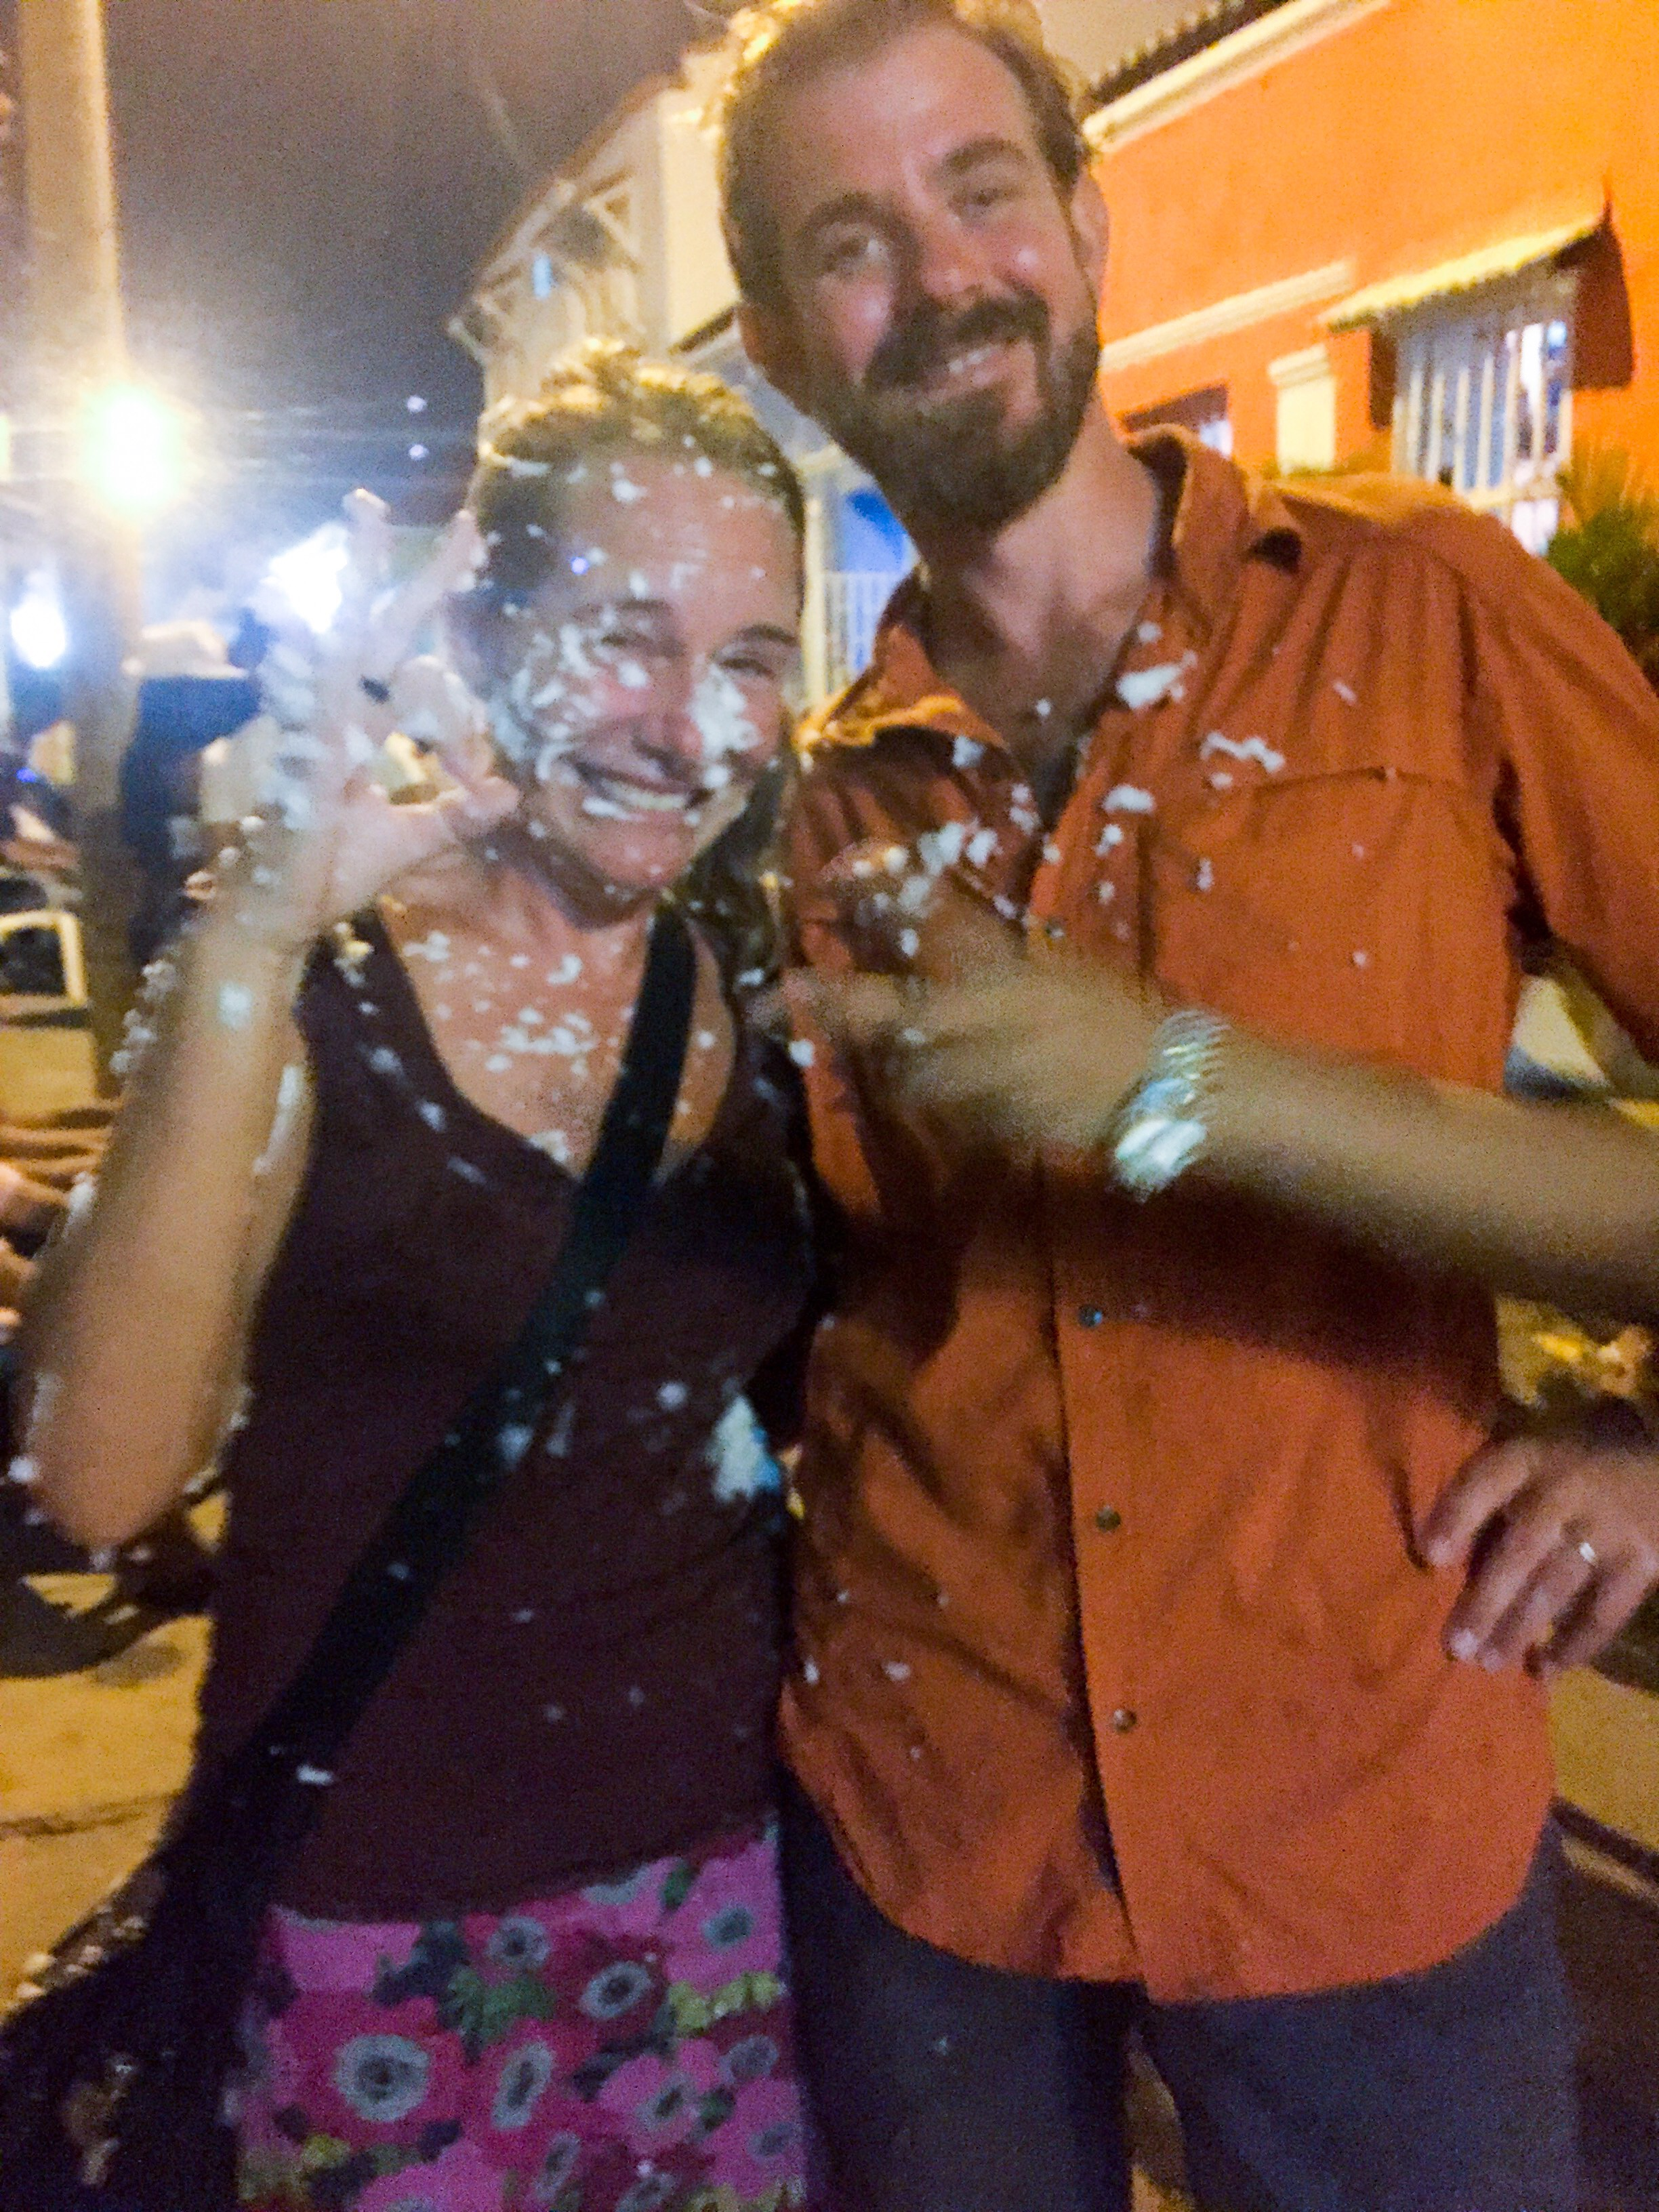 Mia and Jon have been foamed.